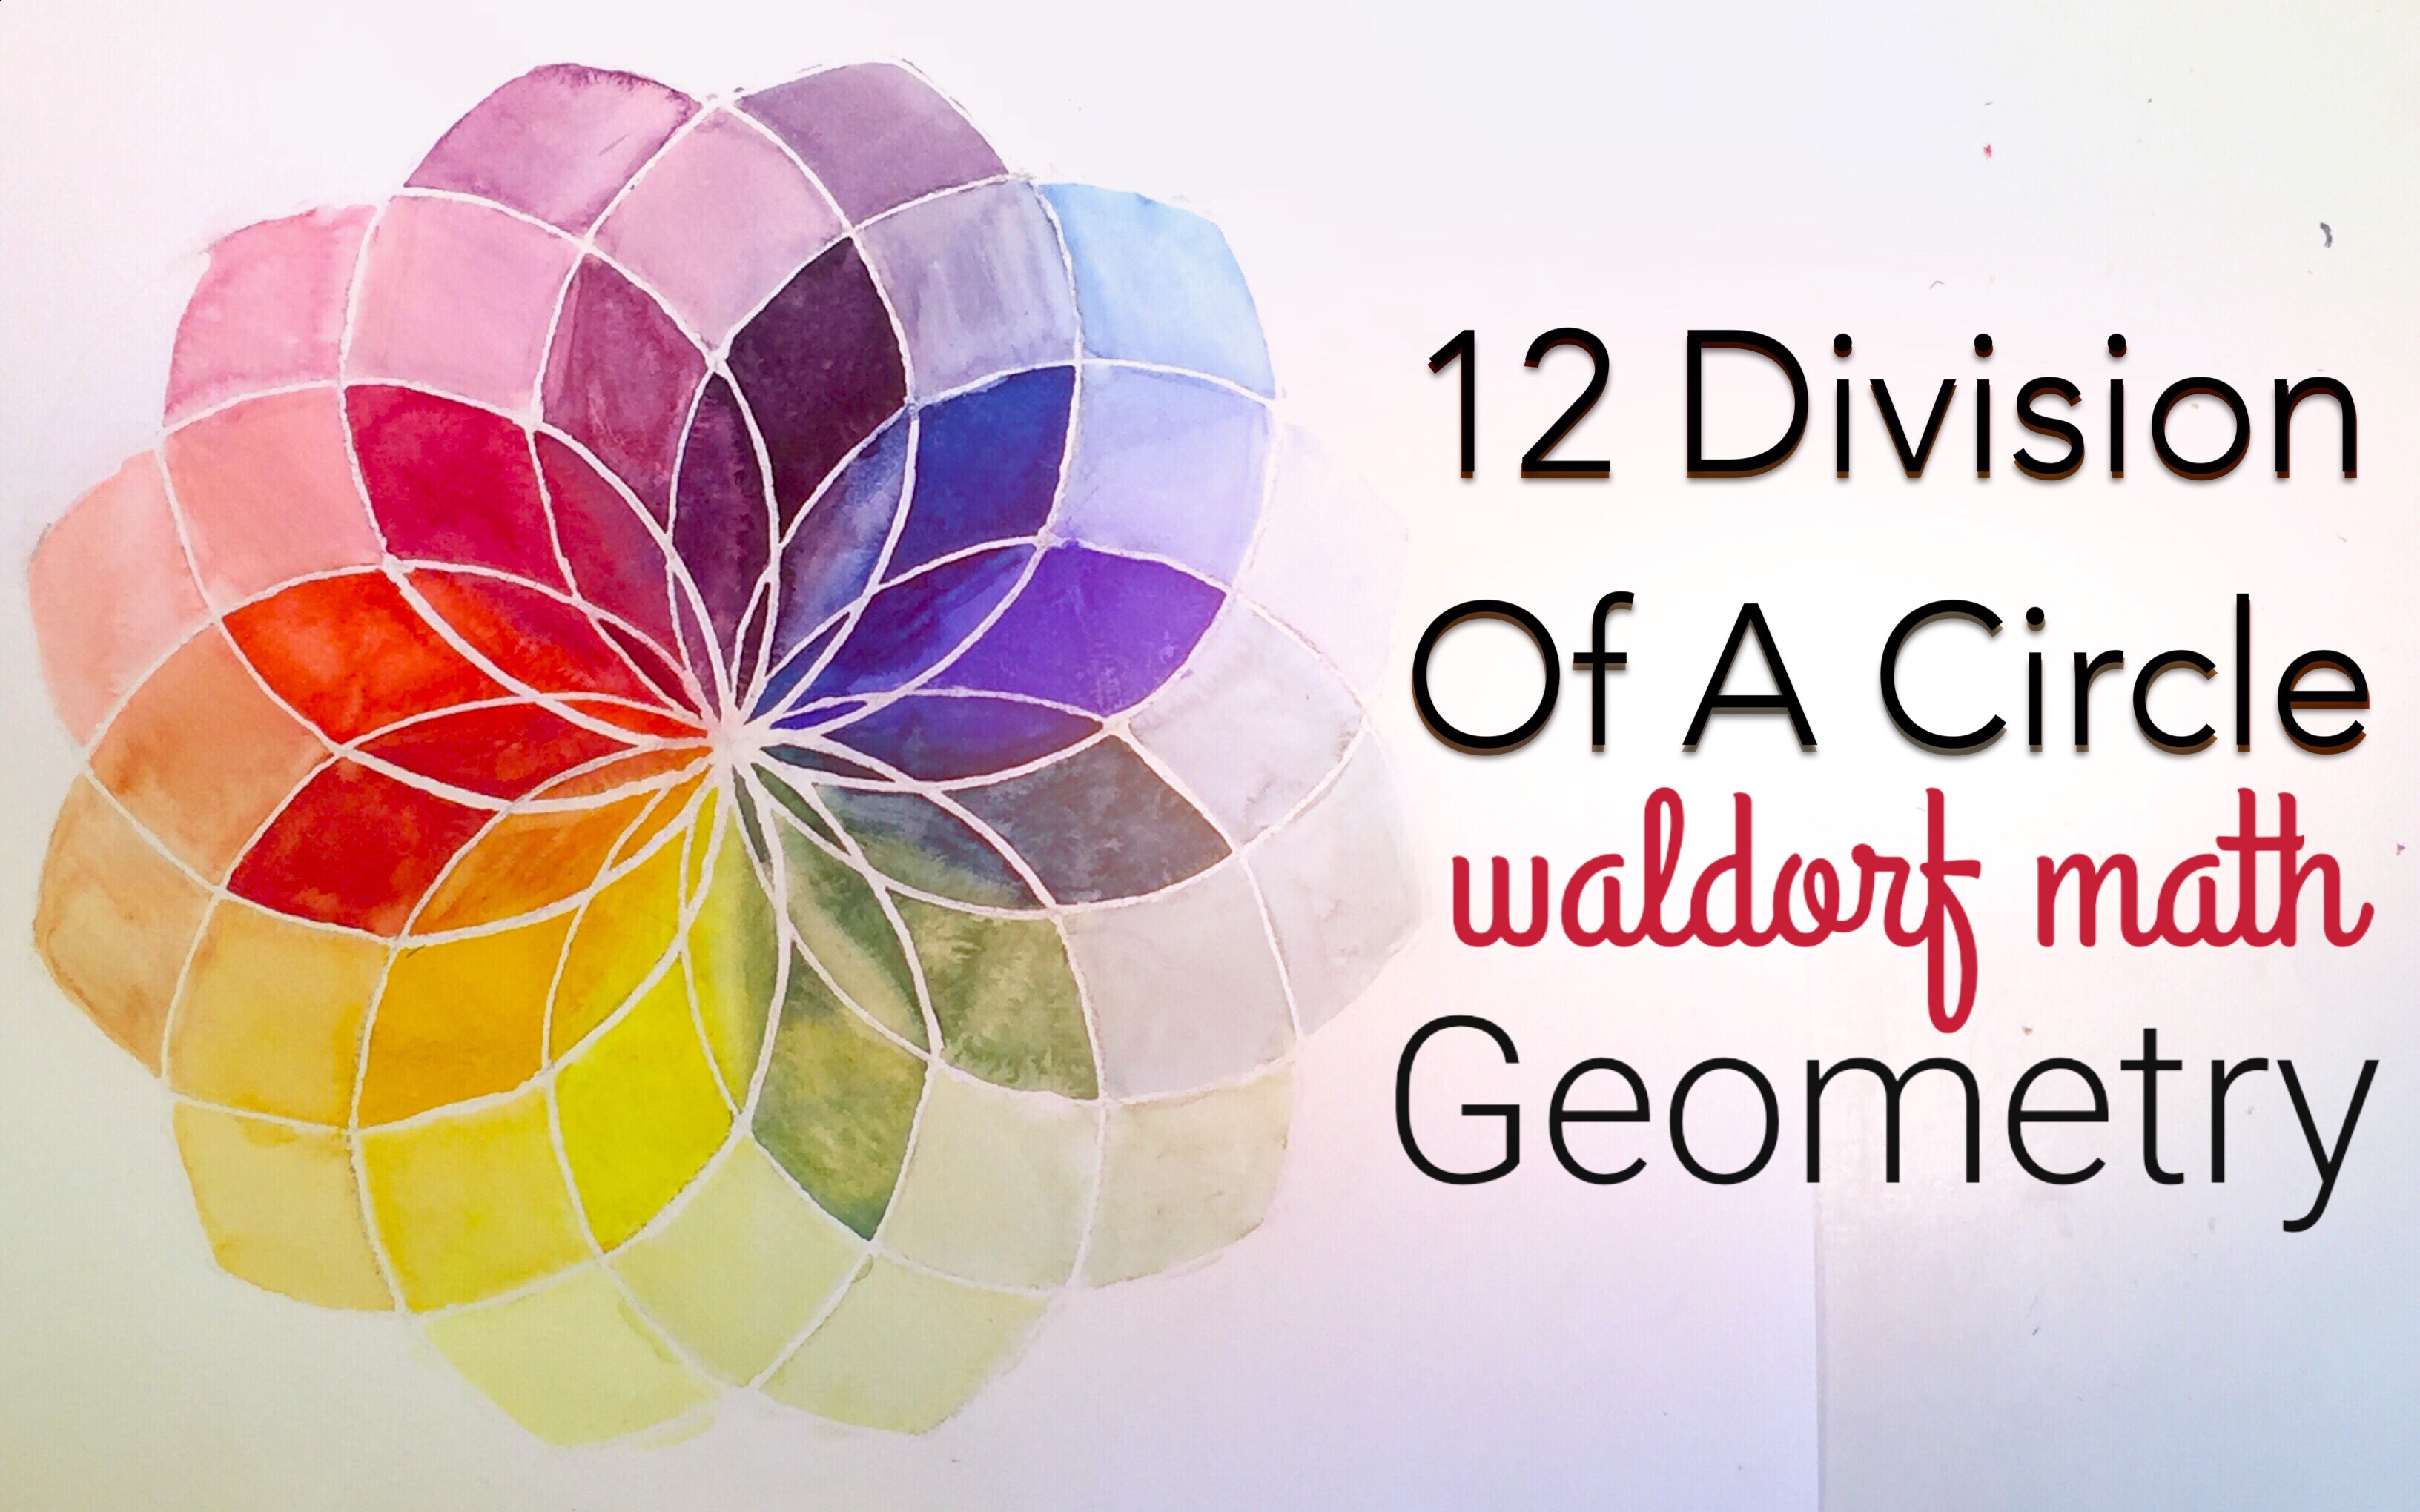 12 DIVISION OF A CIRCLE | WALDORF GEOMETRY